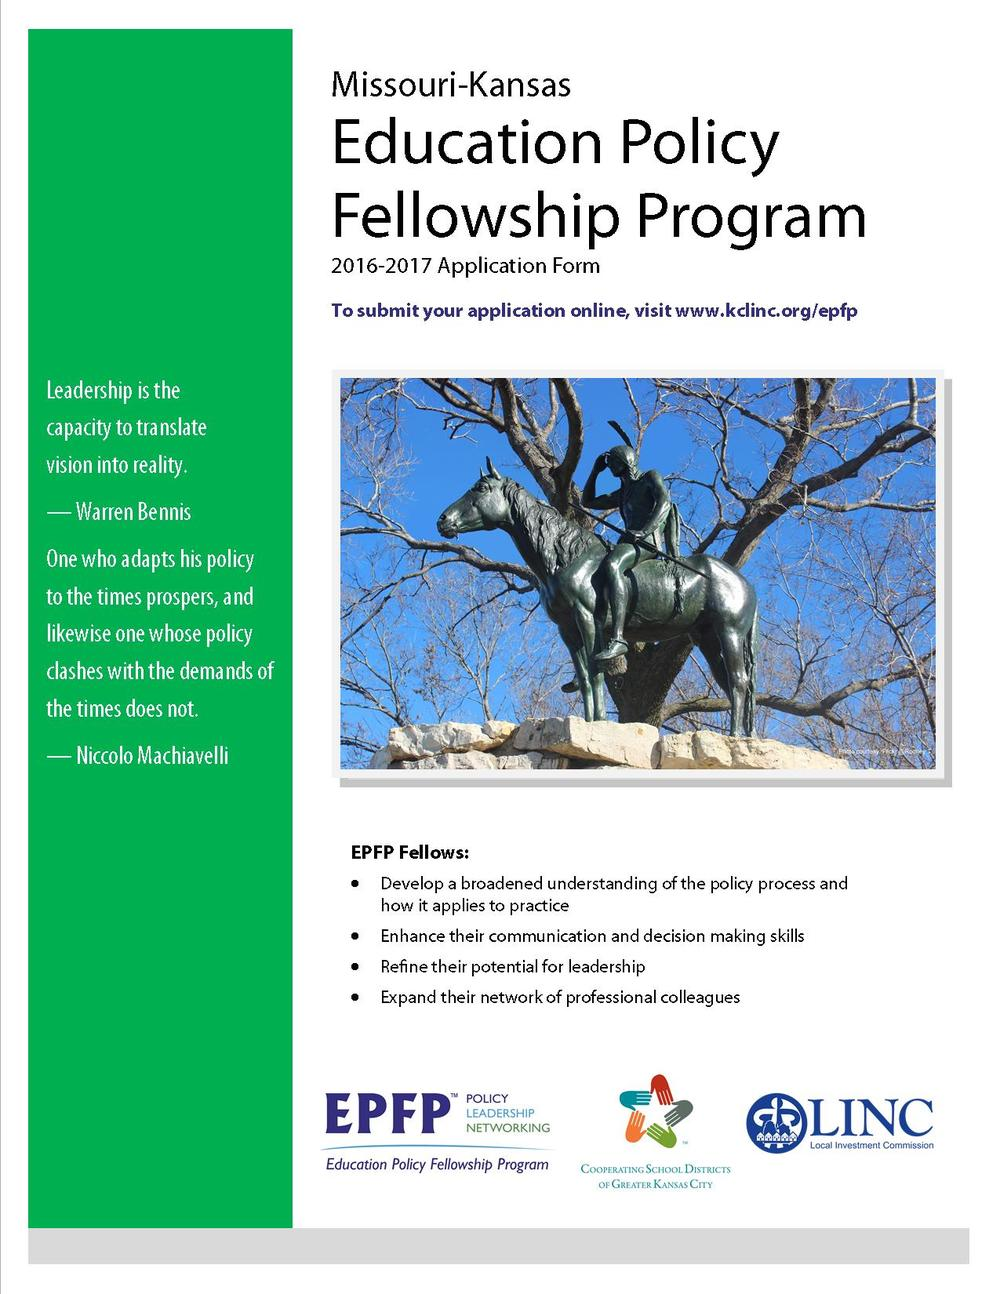 Click cover to download info and application on the 2016-2017 EPFP program.